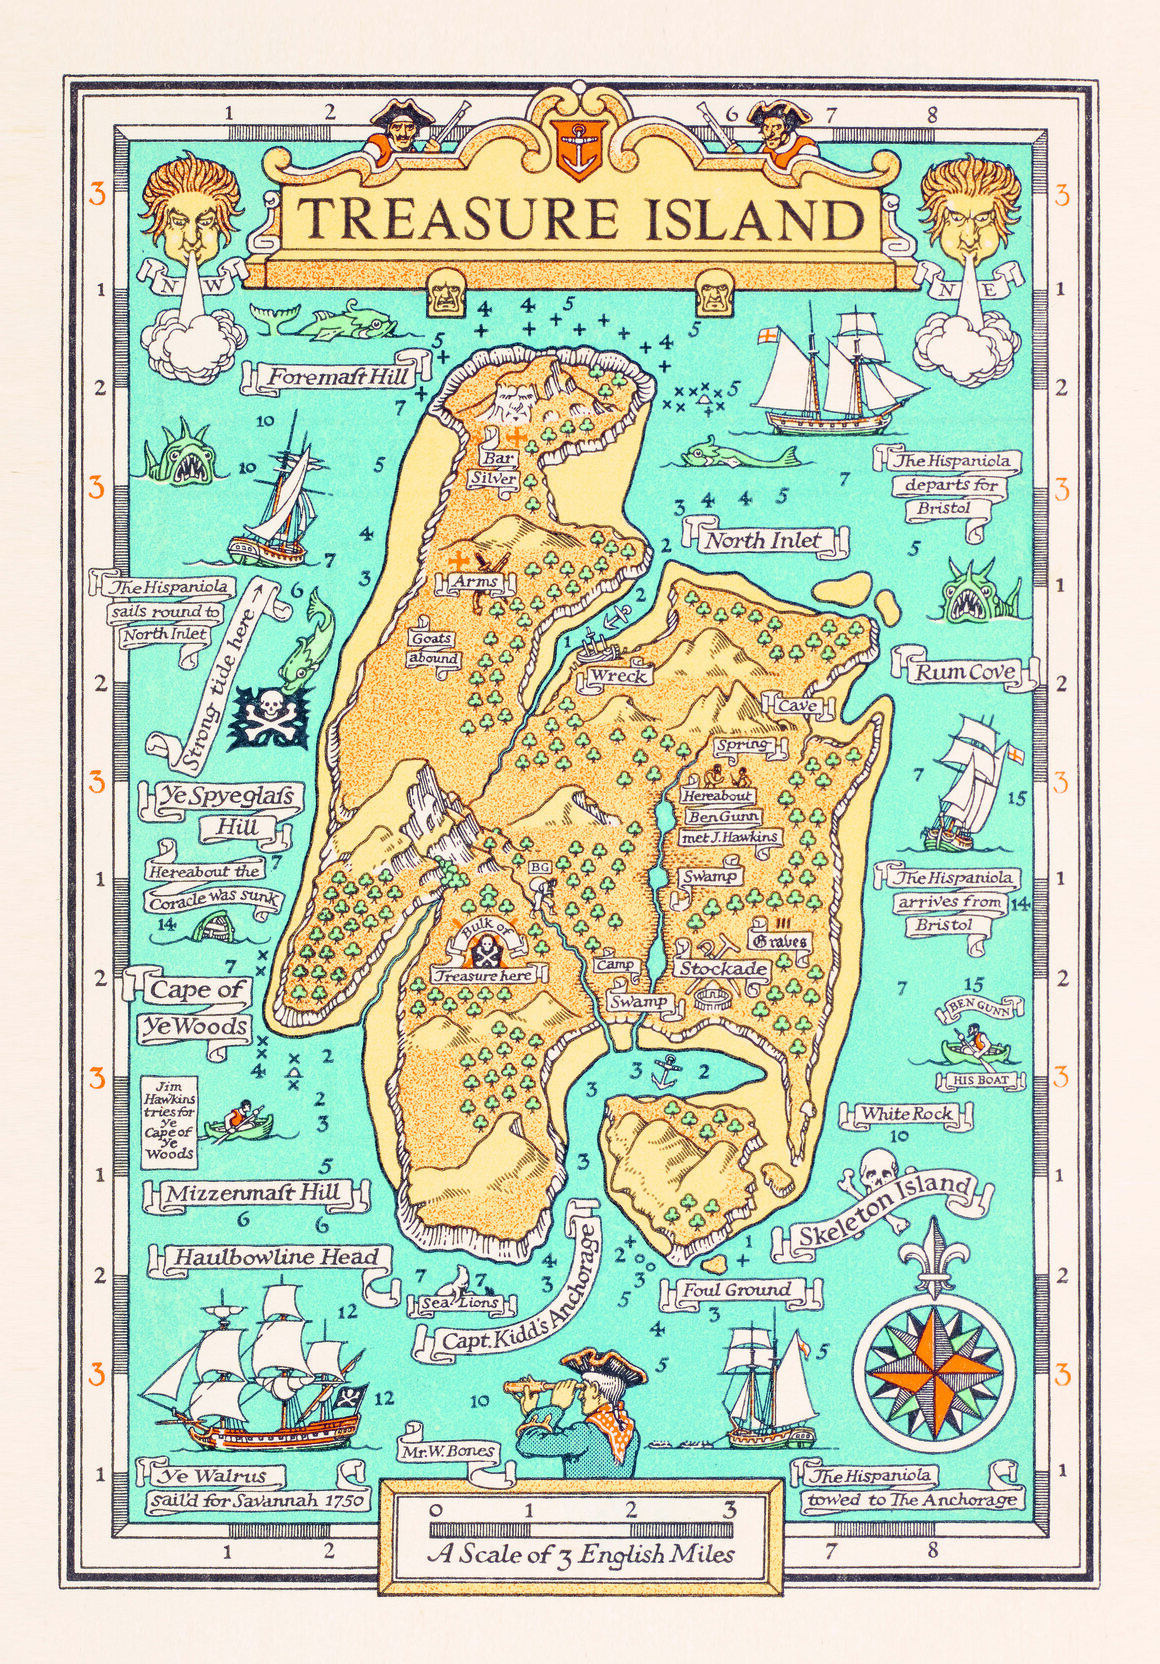 How Writers Map Their Imaginary Worlds - Atlas Obscura on mythological world map, webkinz world map, world system map, ancient language map, sick world map, perfect society map, futuristic town map, second world map, imagination world map, make believe island map, create your own fictional map, living world map, fictional world map, ideology world map, first law abercrombie map, persistent world map, one piece world map, large world map, negative world map, fictional nation map,